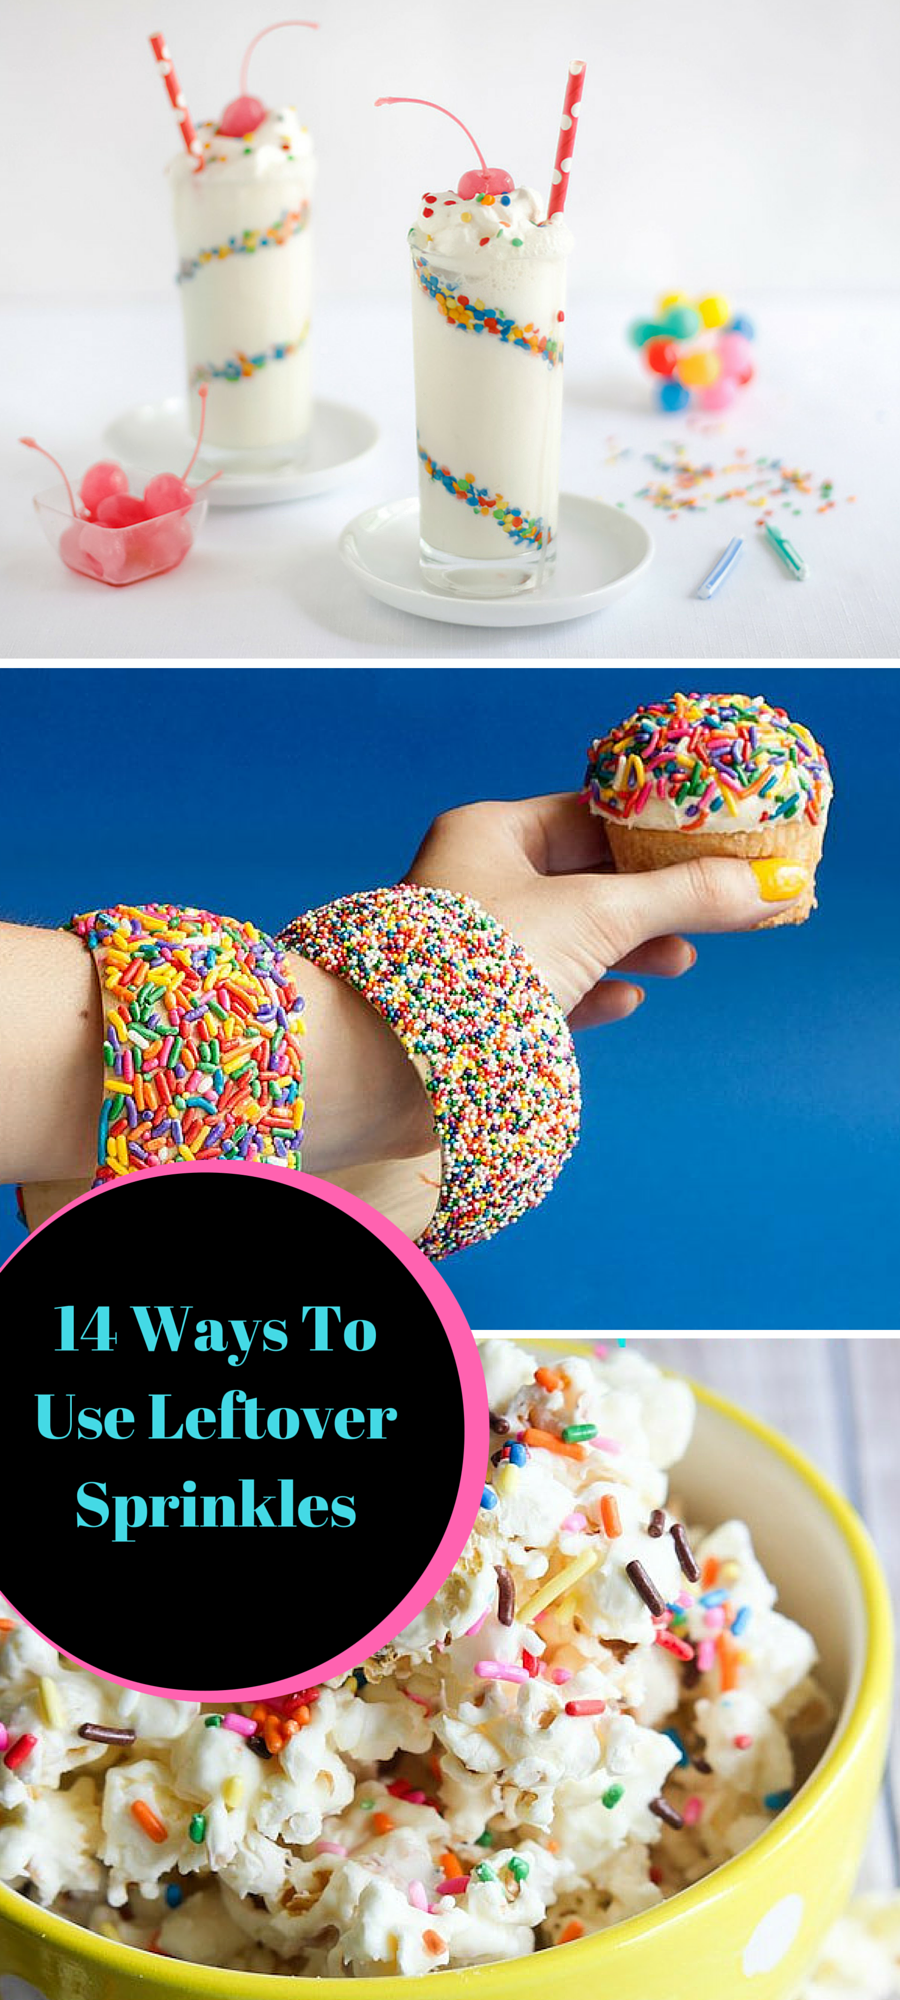 Here are 14 ways to use up the leftover sprinkles that have been sitting in your cupboard!